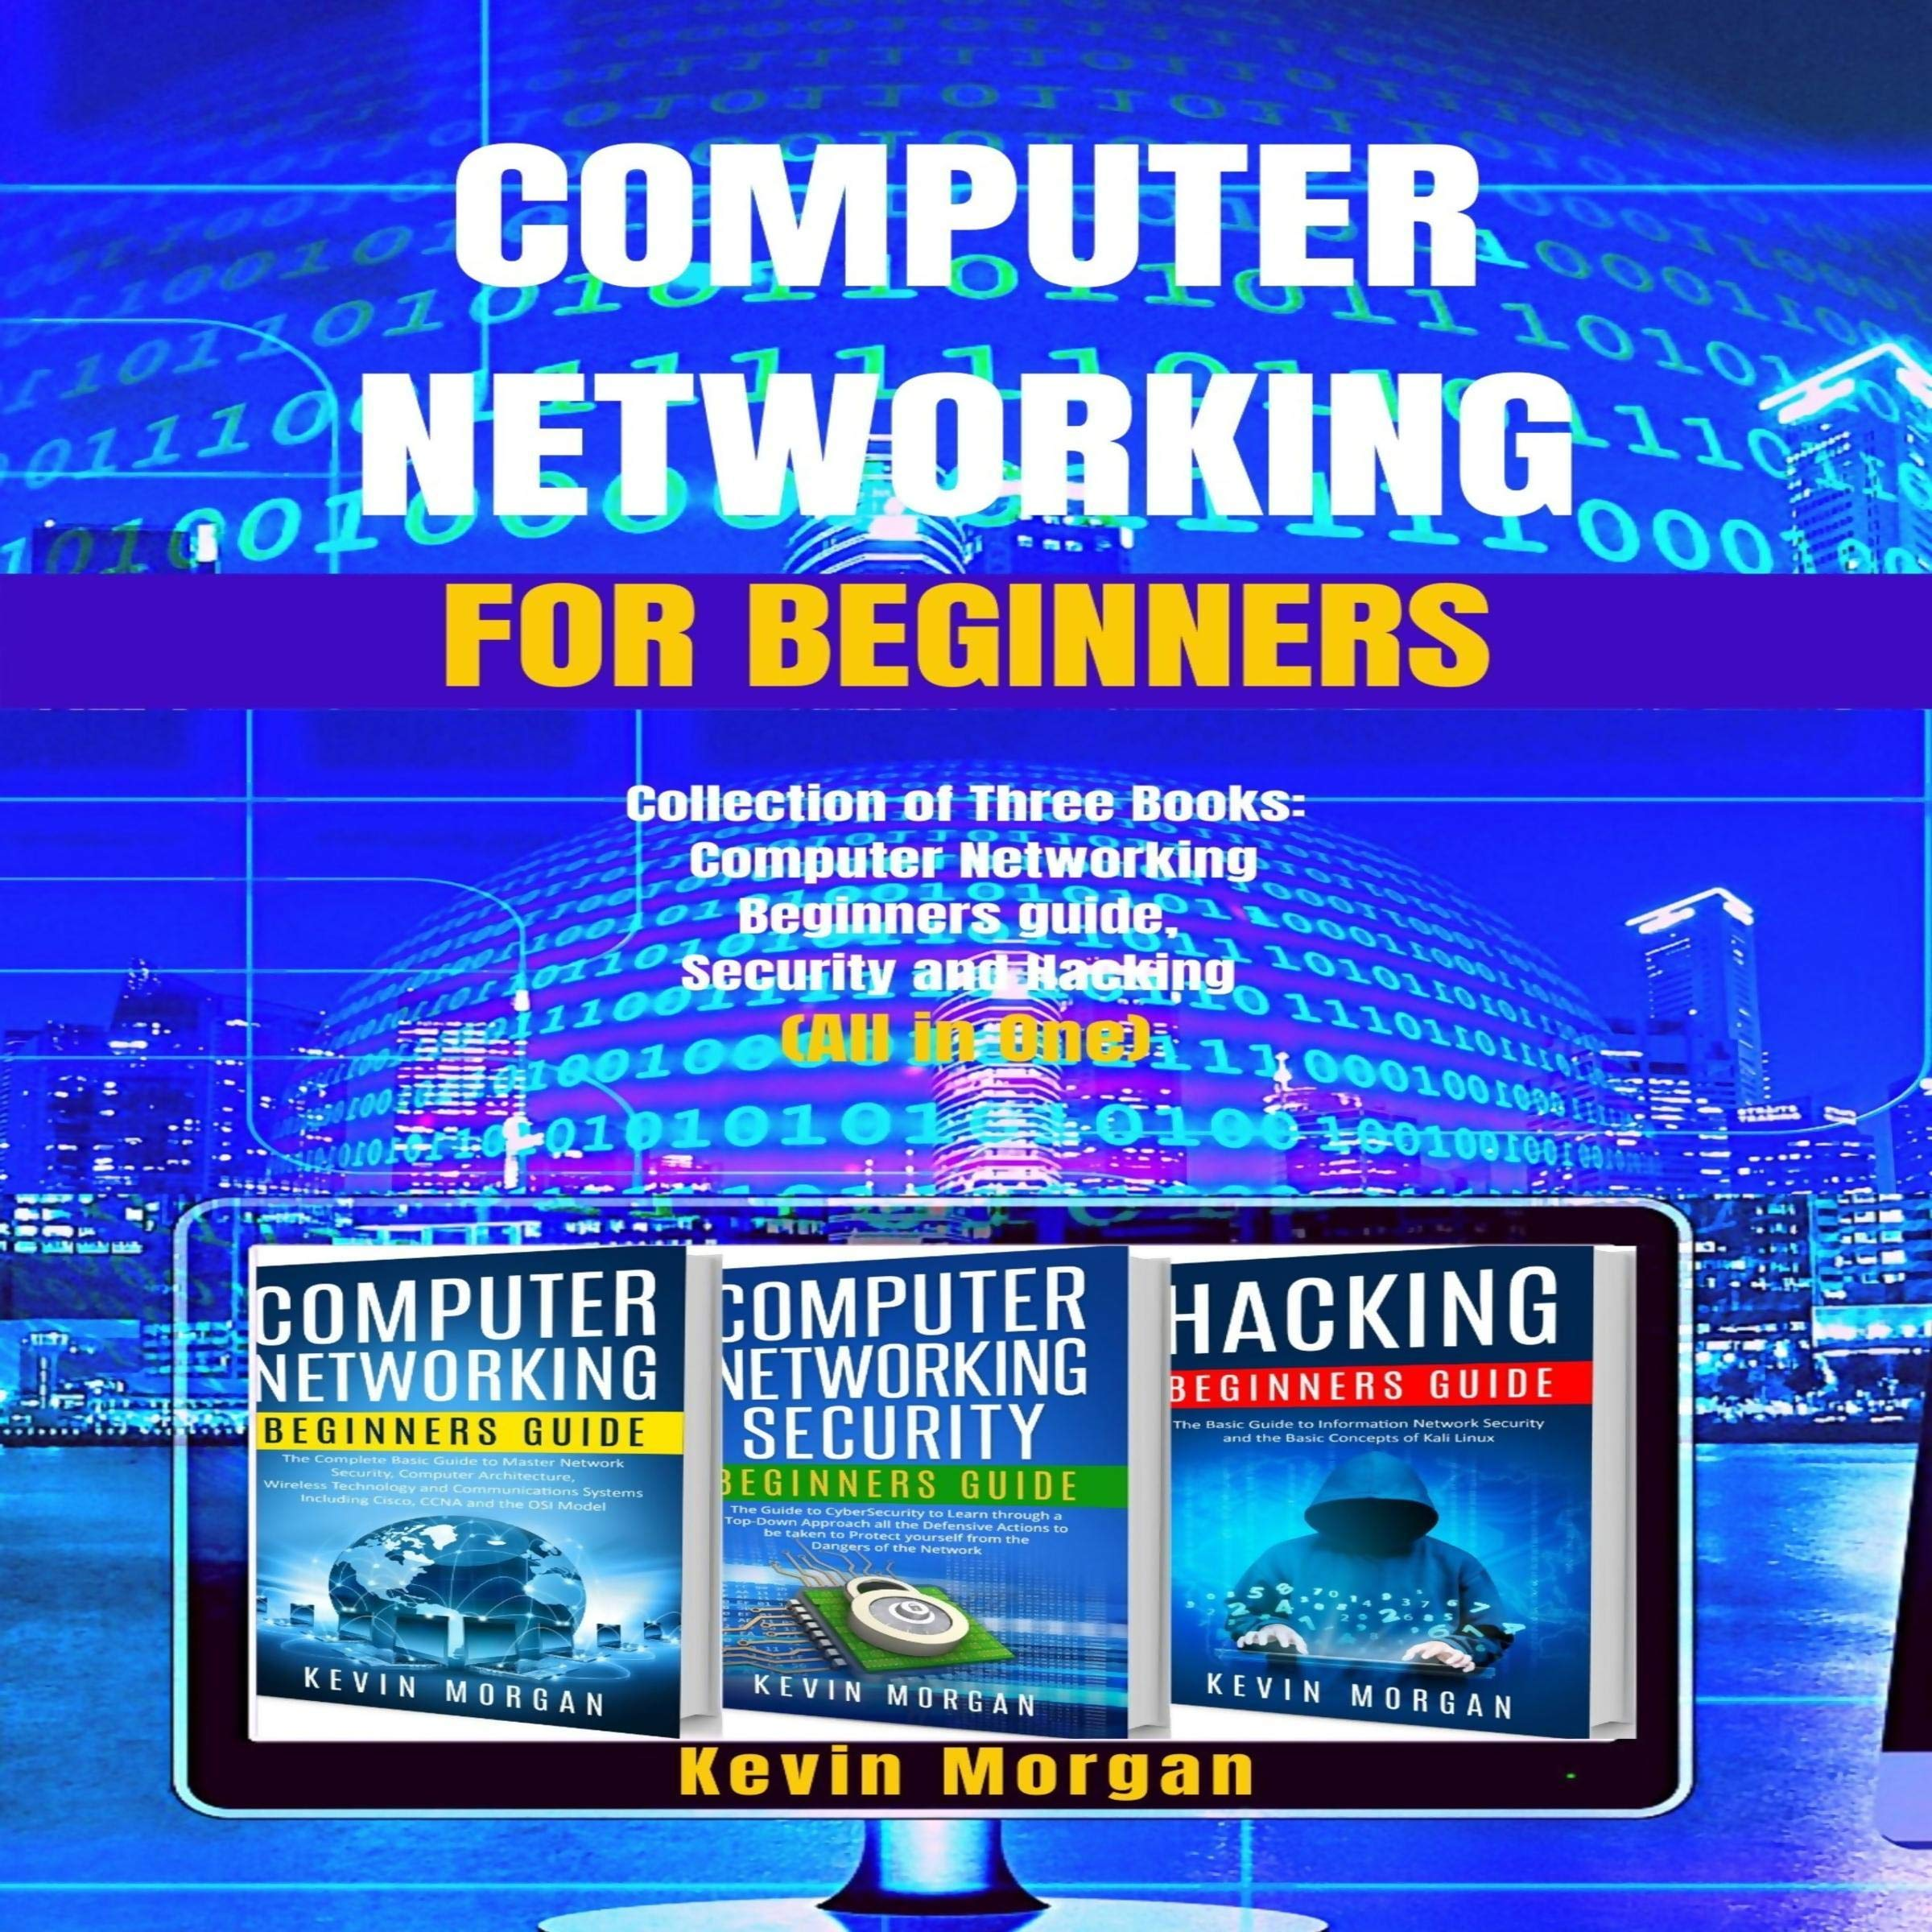 Image OfComputer Networking For Beginners: Collection Of Three Books: Computer Networking Beginners Guide, Security, And Hacking (...